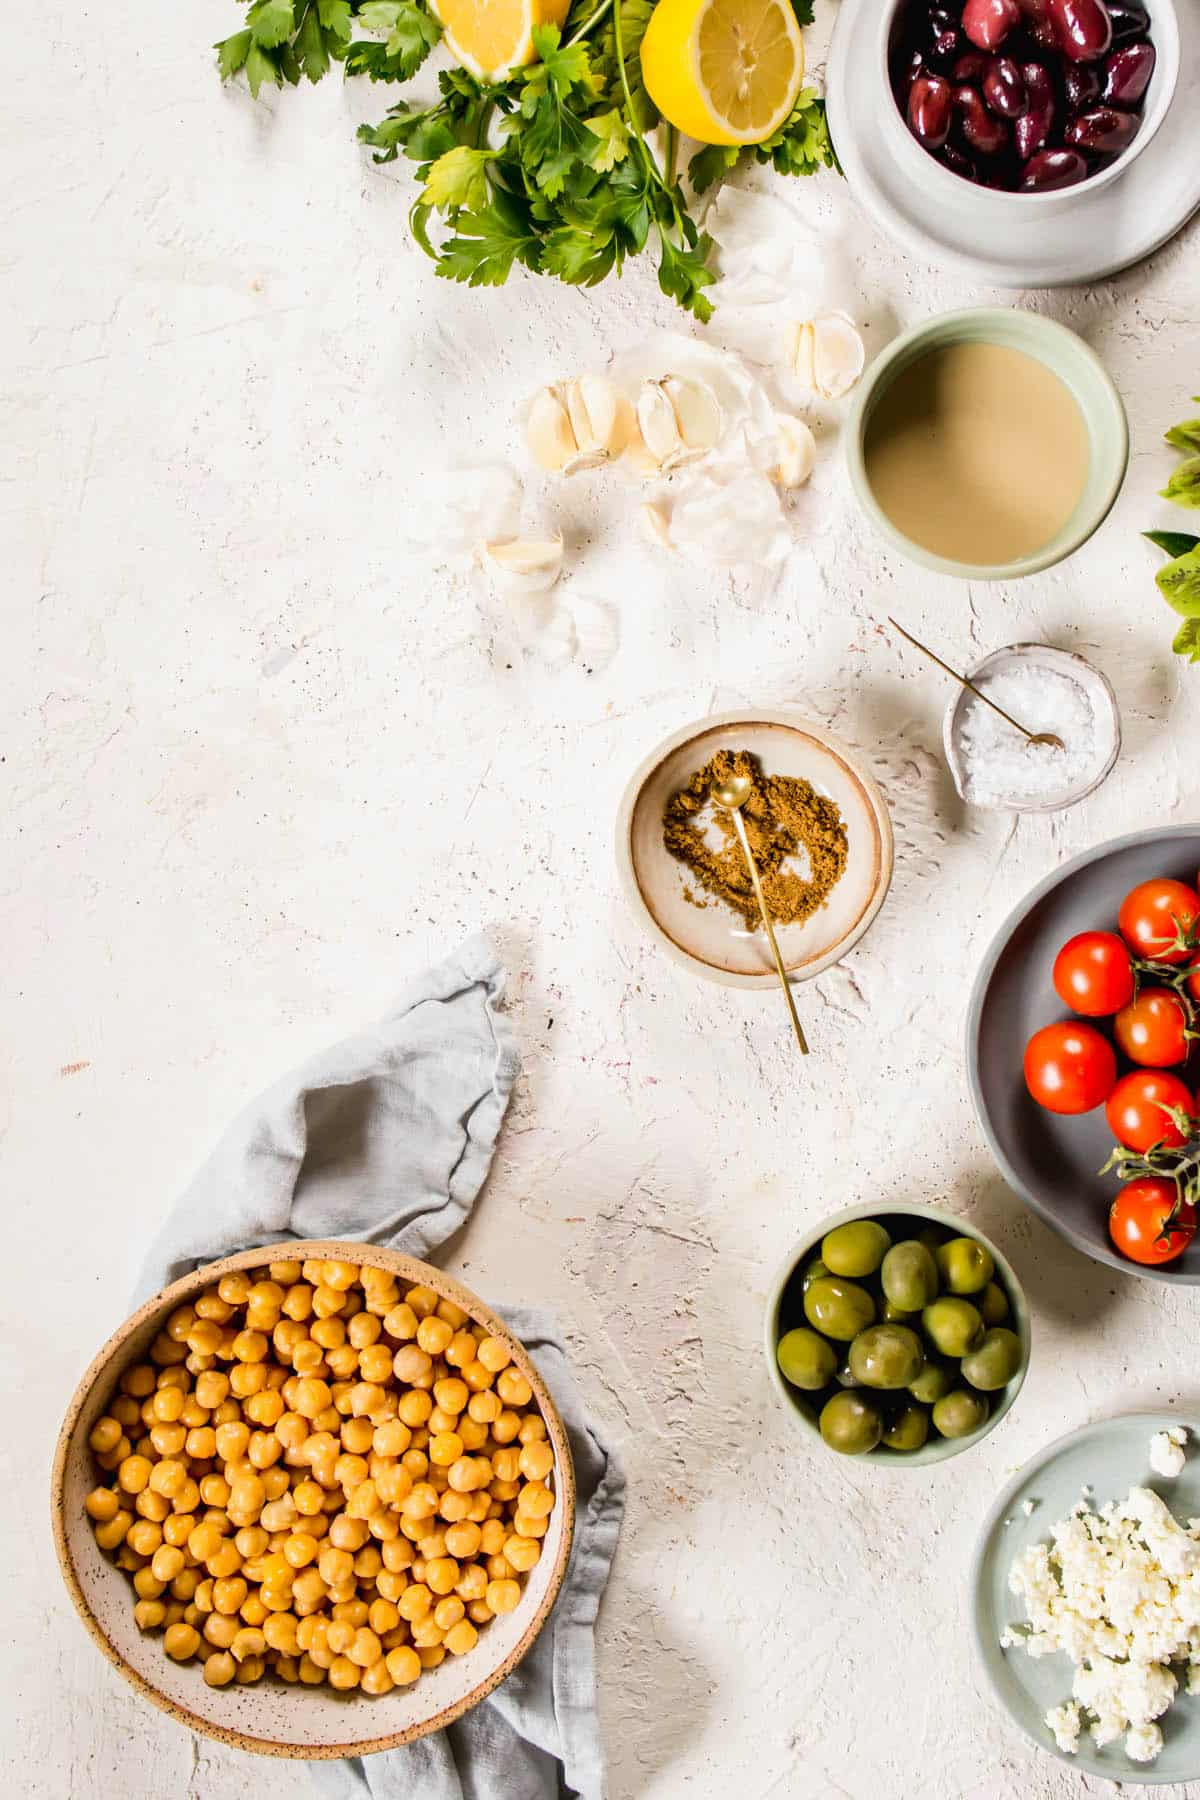 Ingredients for The Best Homemade Loaded Hummus